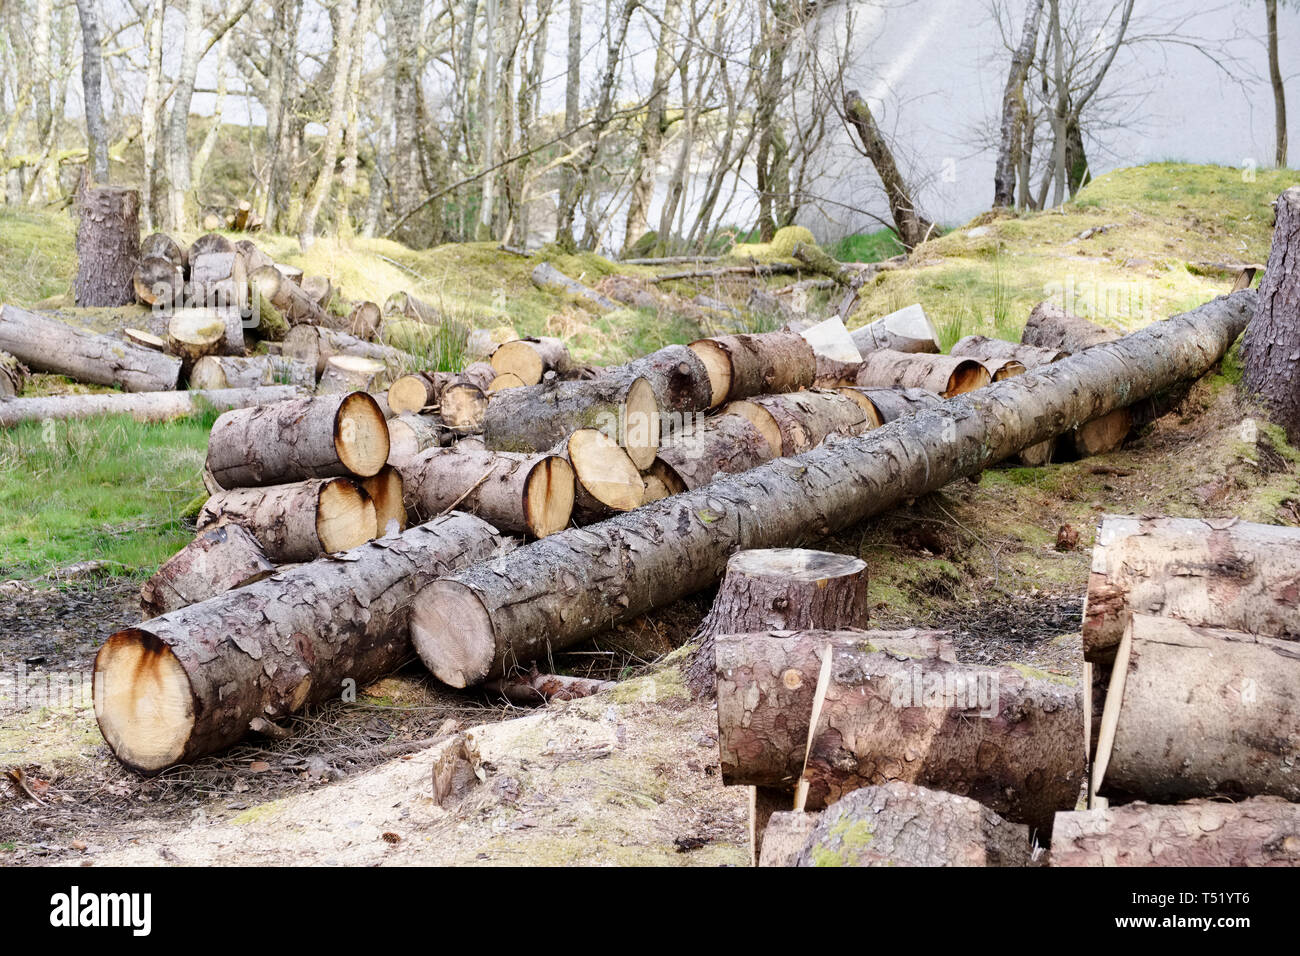 Chopped wood logs for sale use in fire place at home stored on